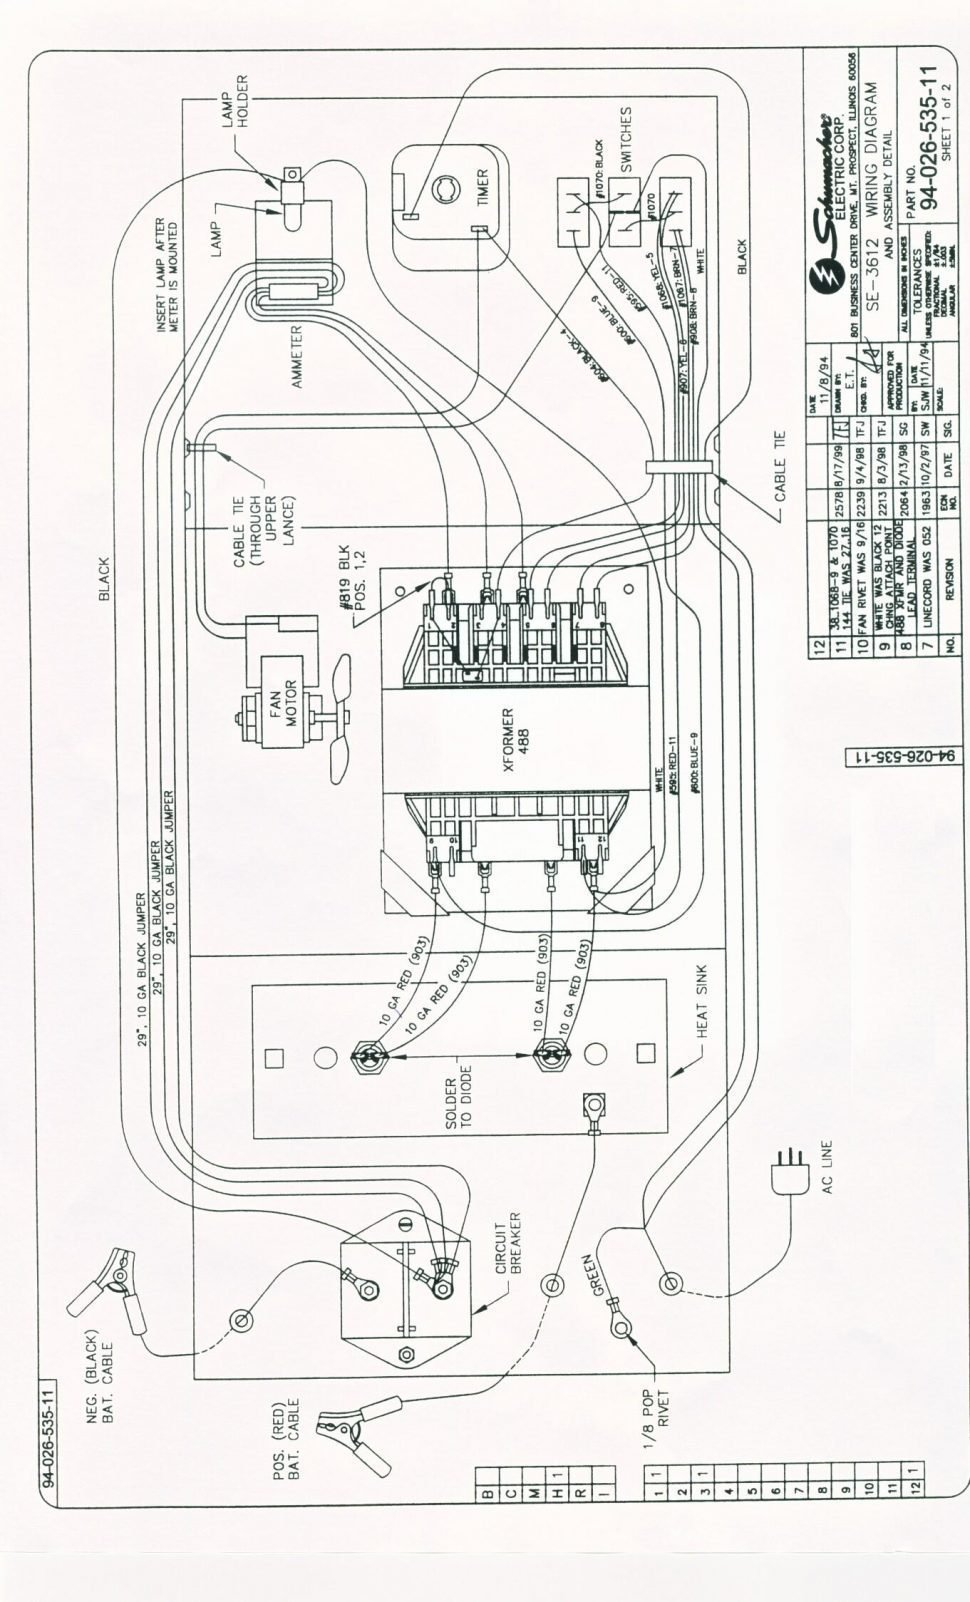 hight resolution of 970x1602 diagram amazing household electrical wiring diagram picture